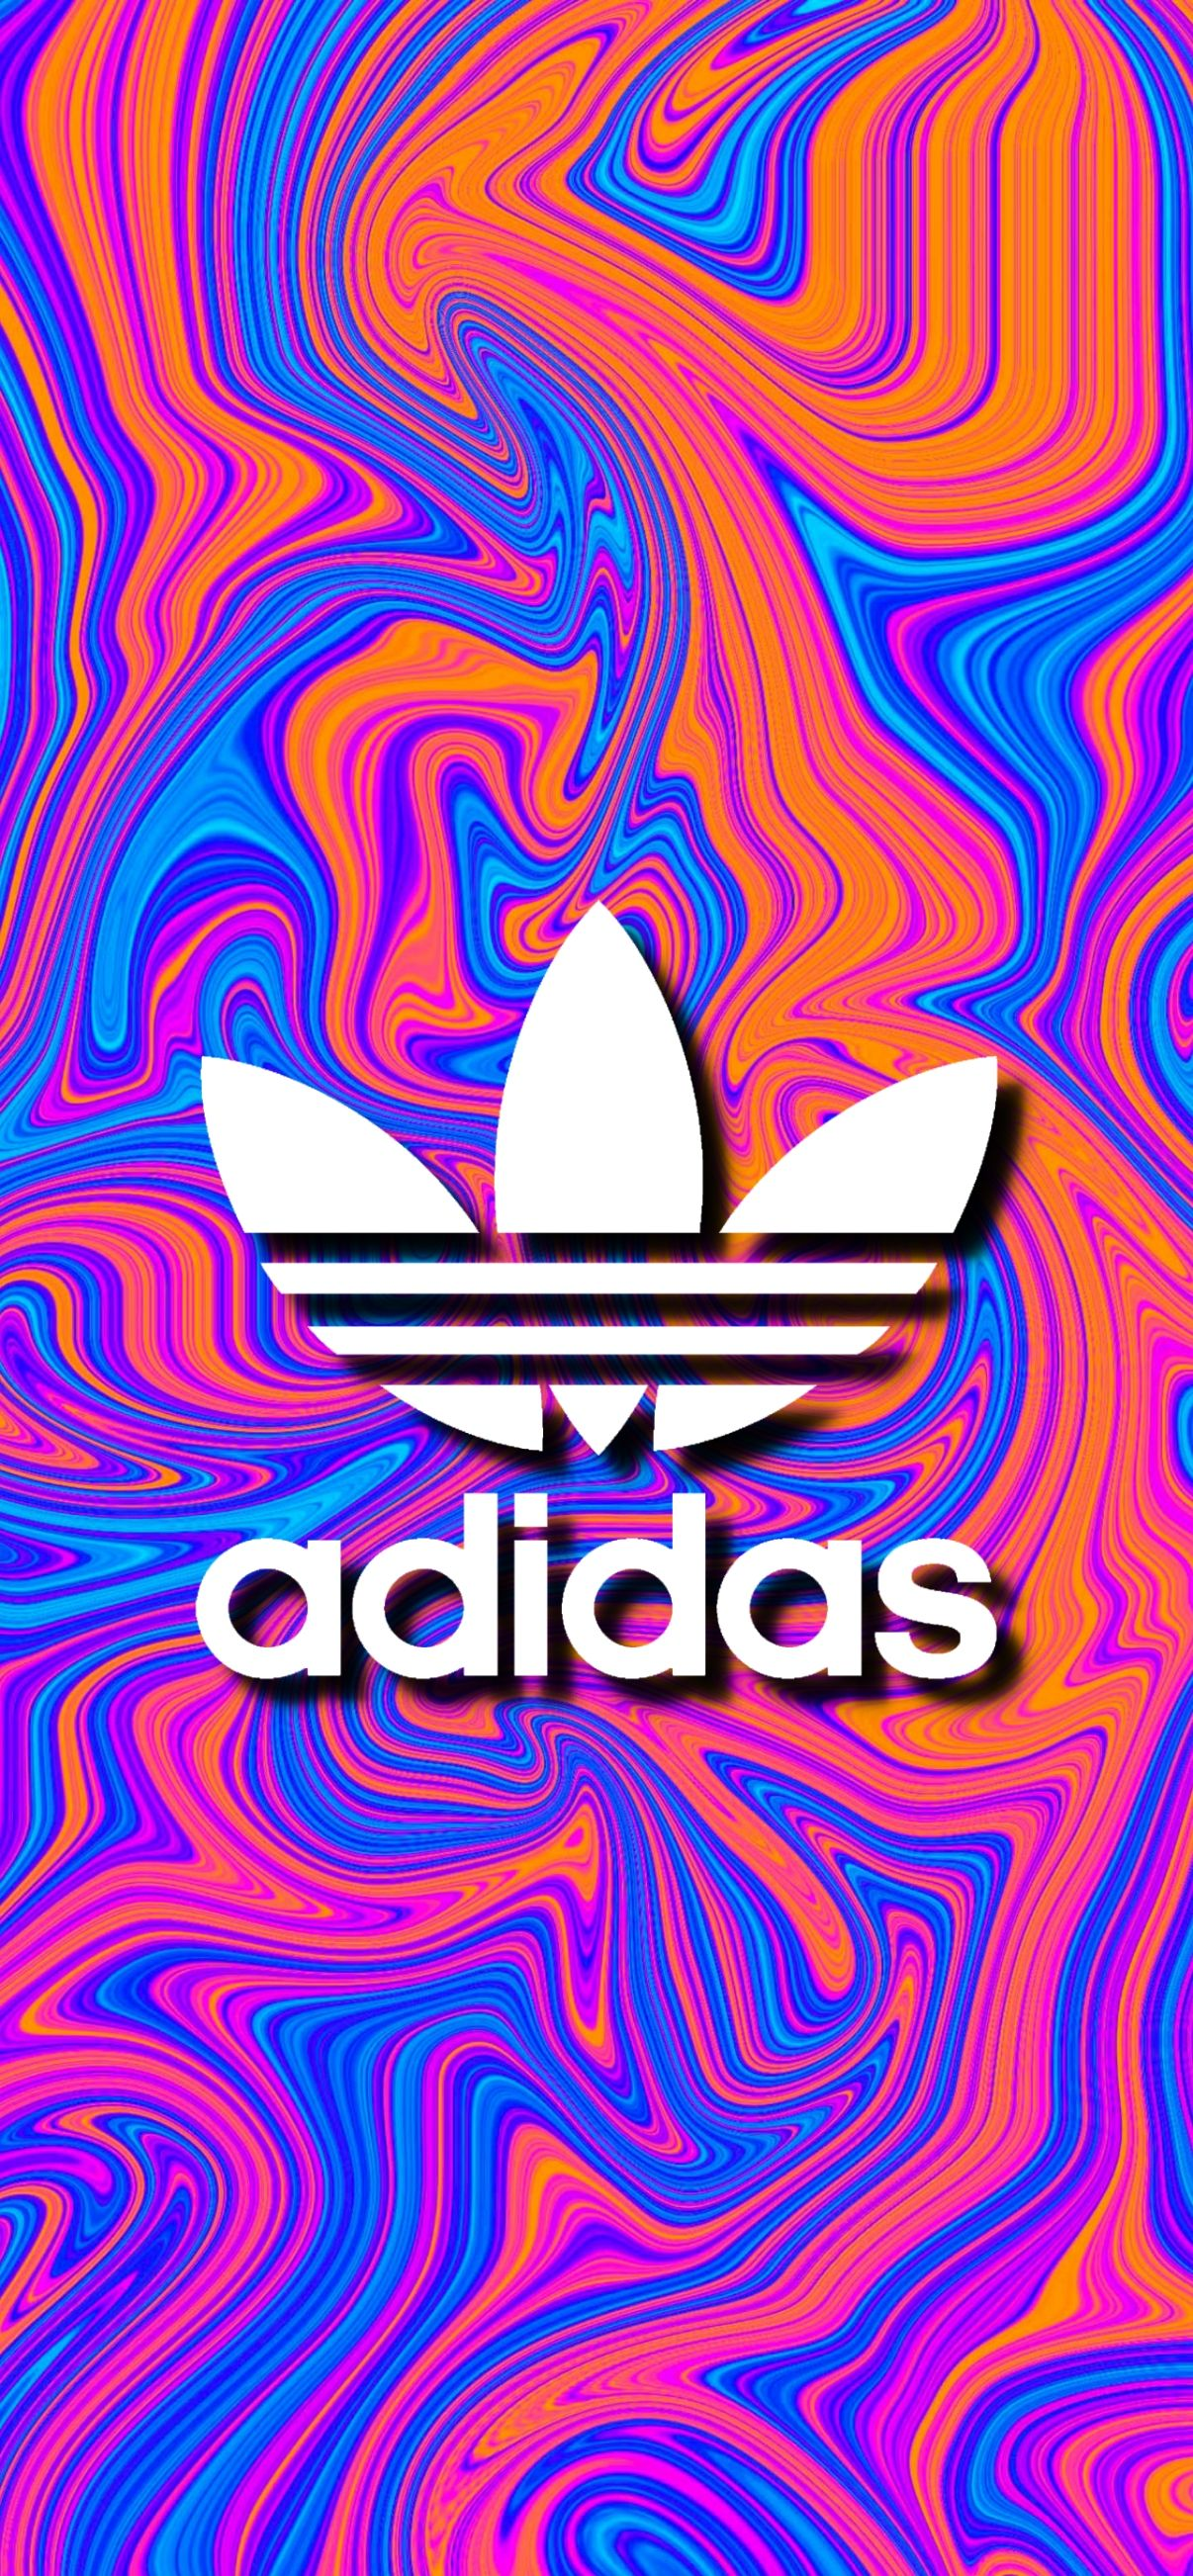 Wallpaper Iphone Adidas In 2020 Iphone Wallpaper Adidas